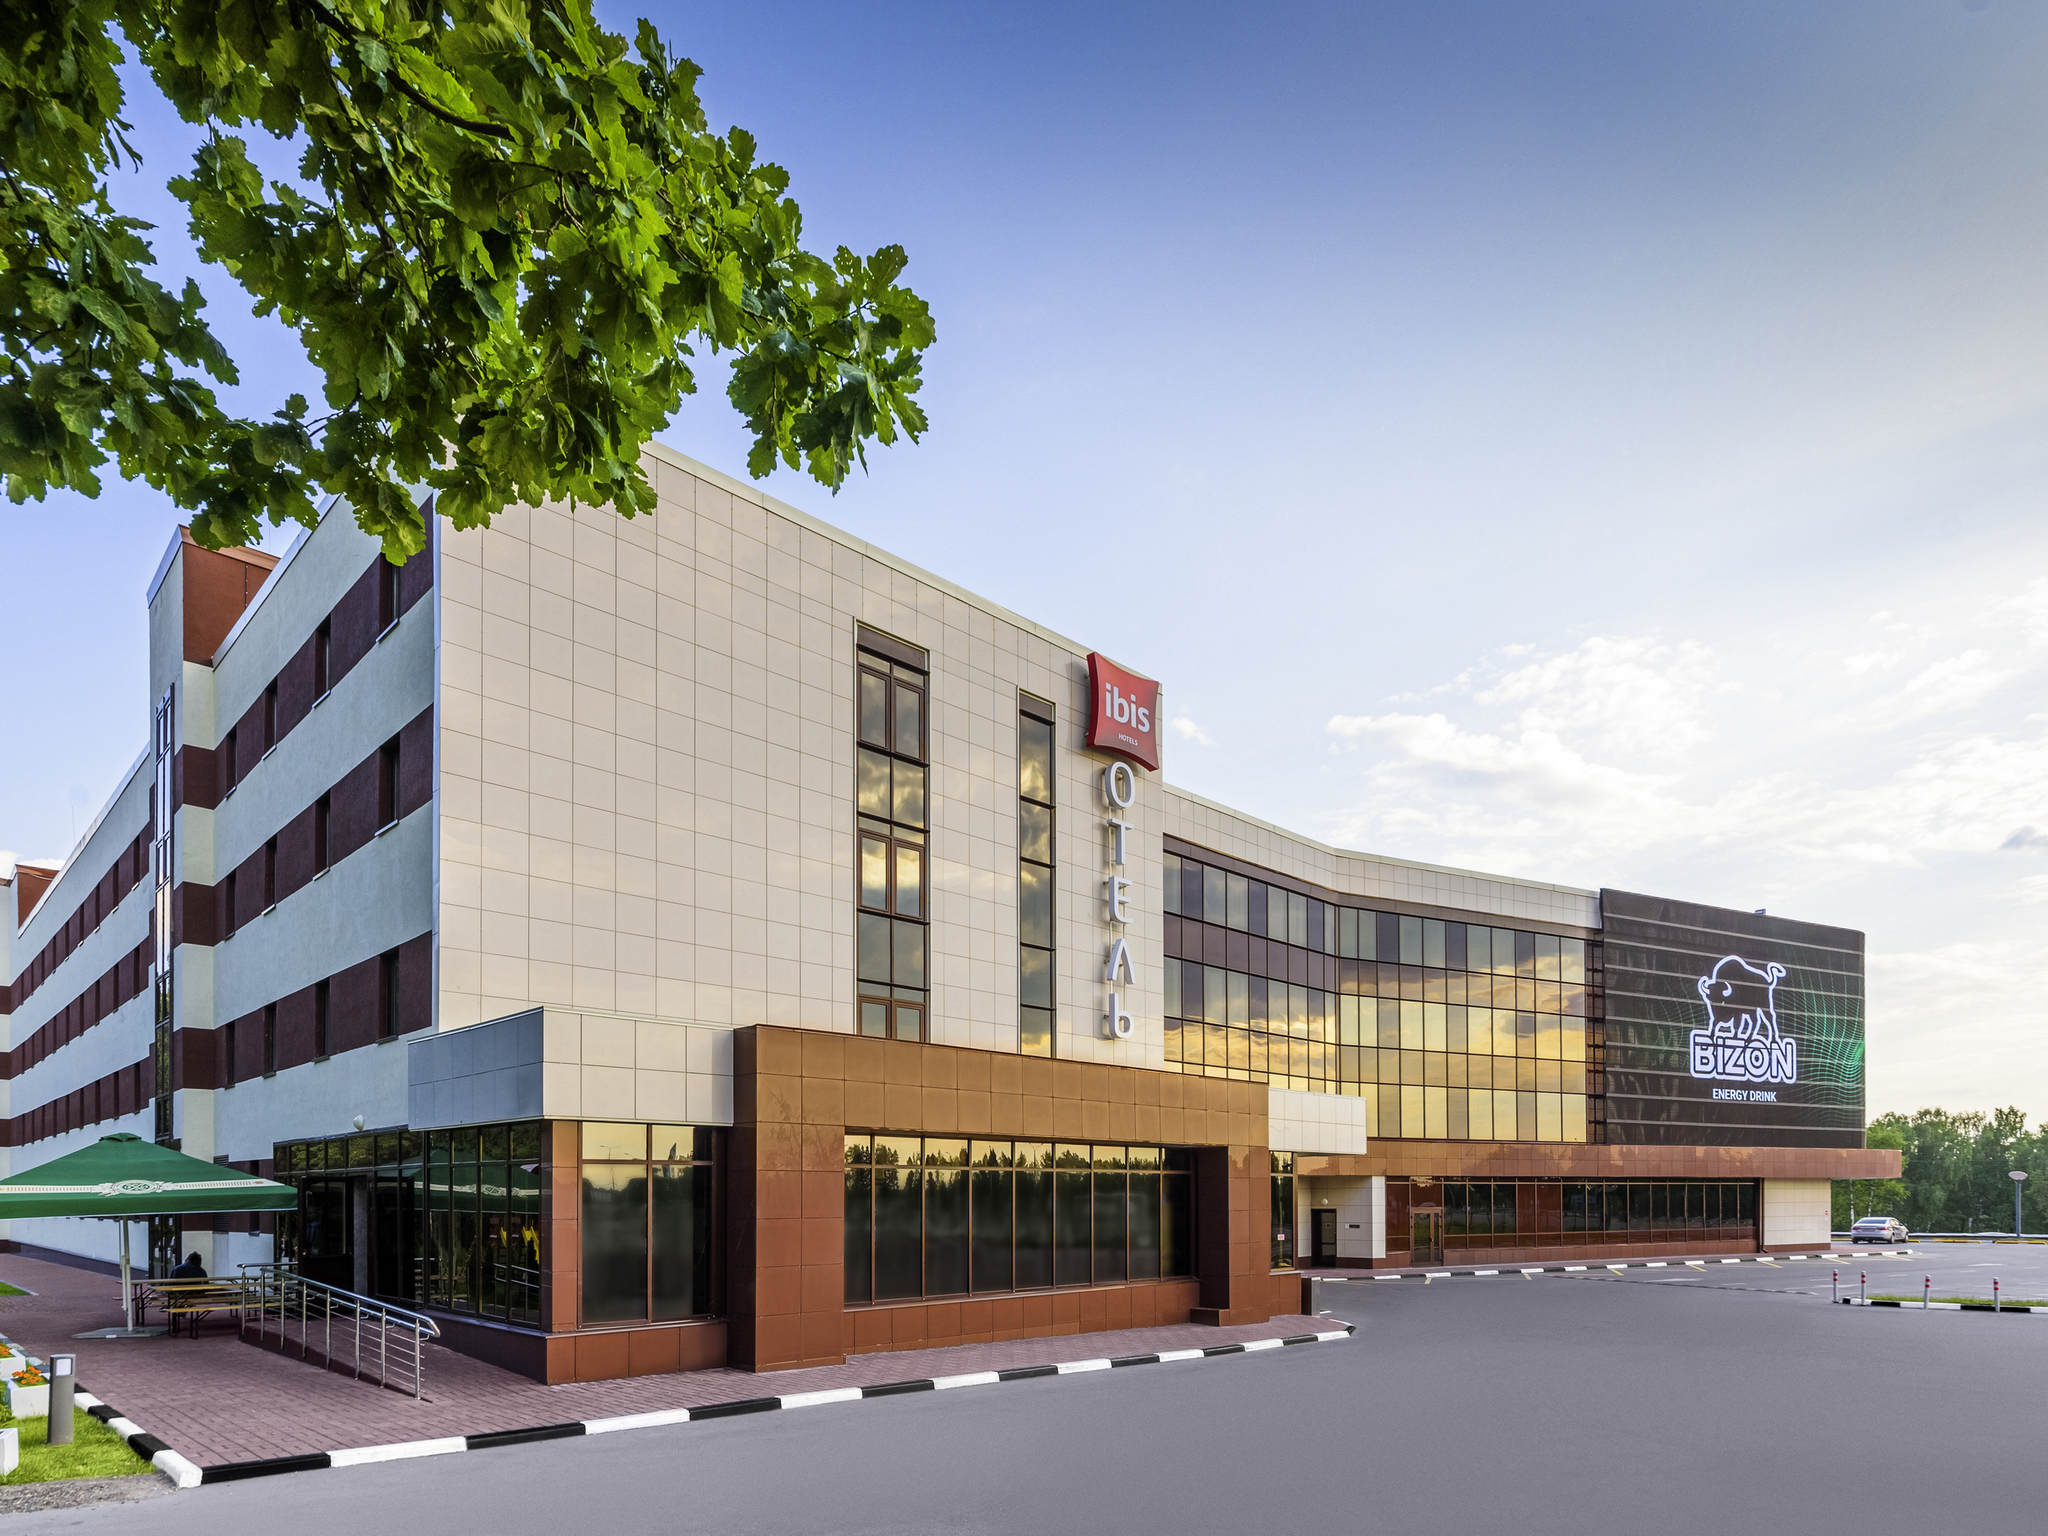 Otel – Ibis Moscow Domodedovo Airport